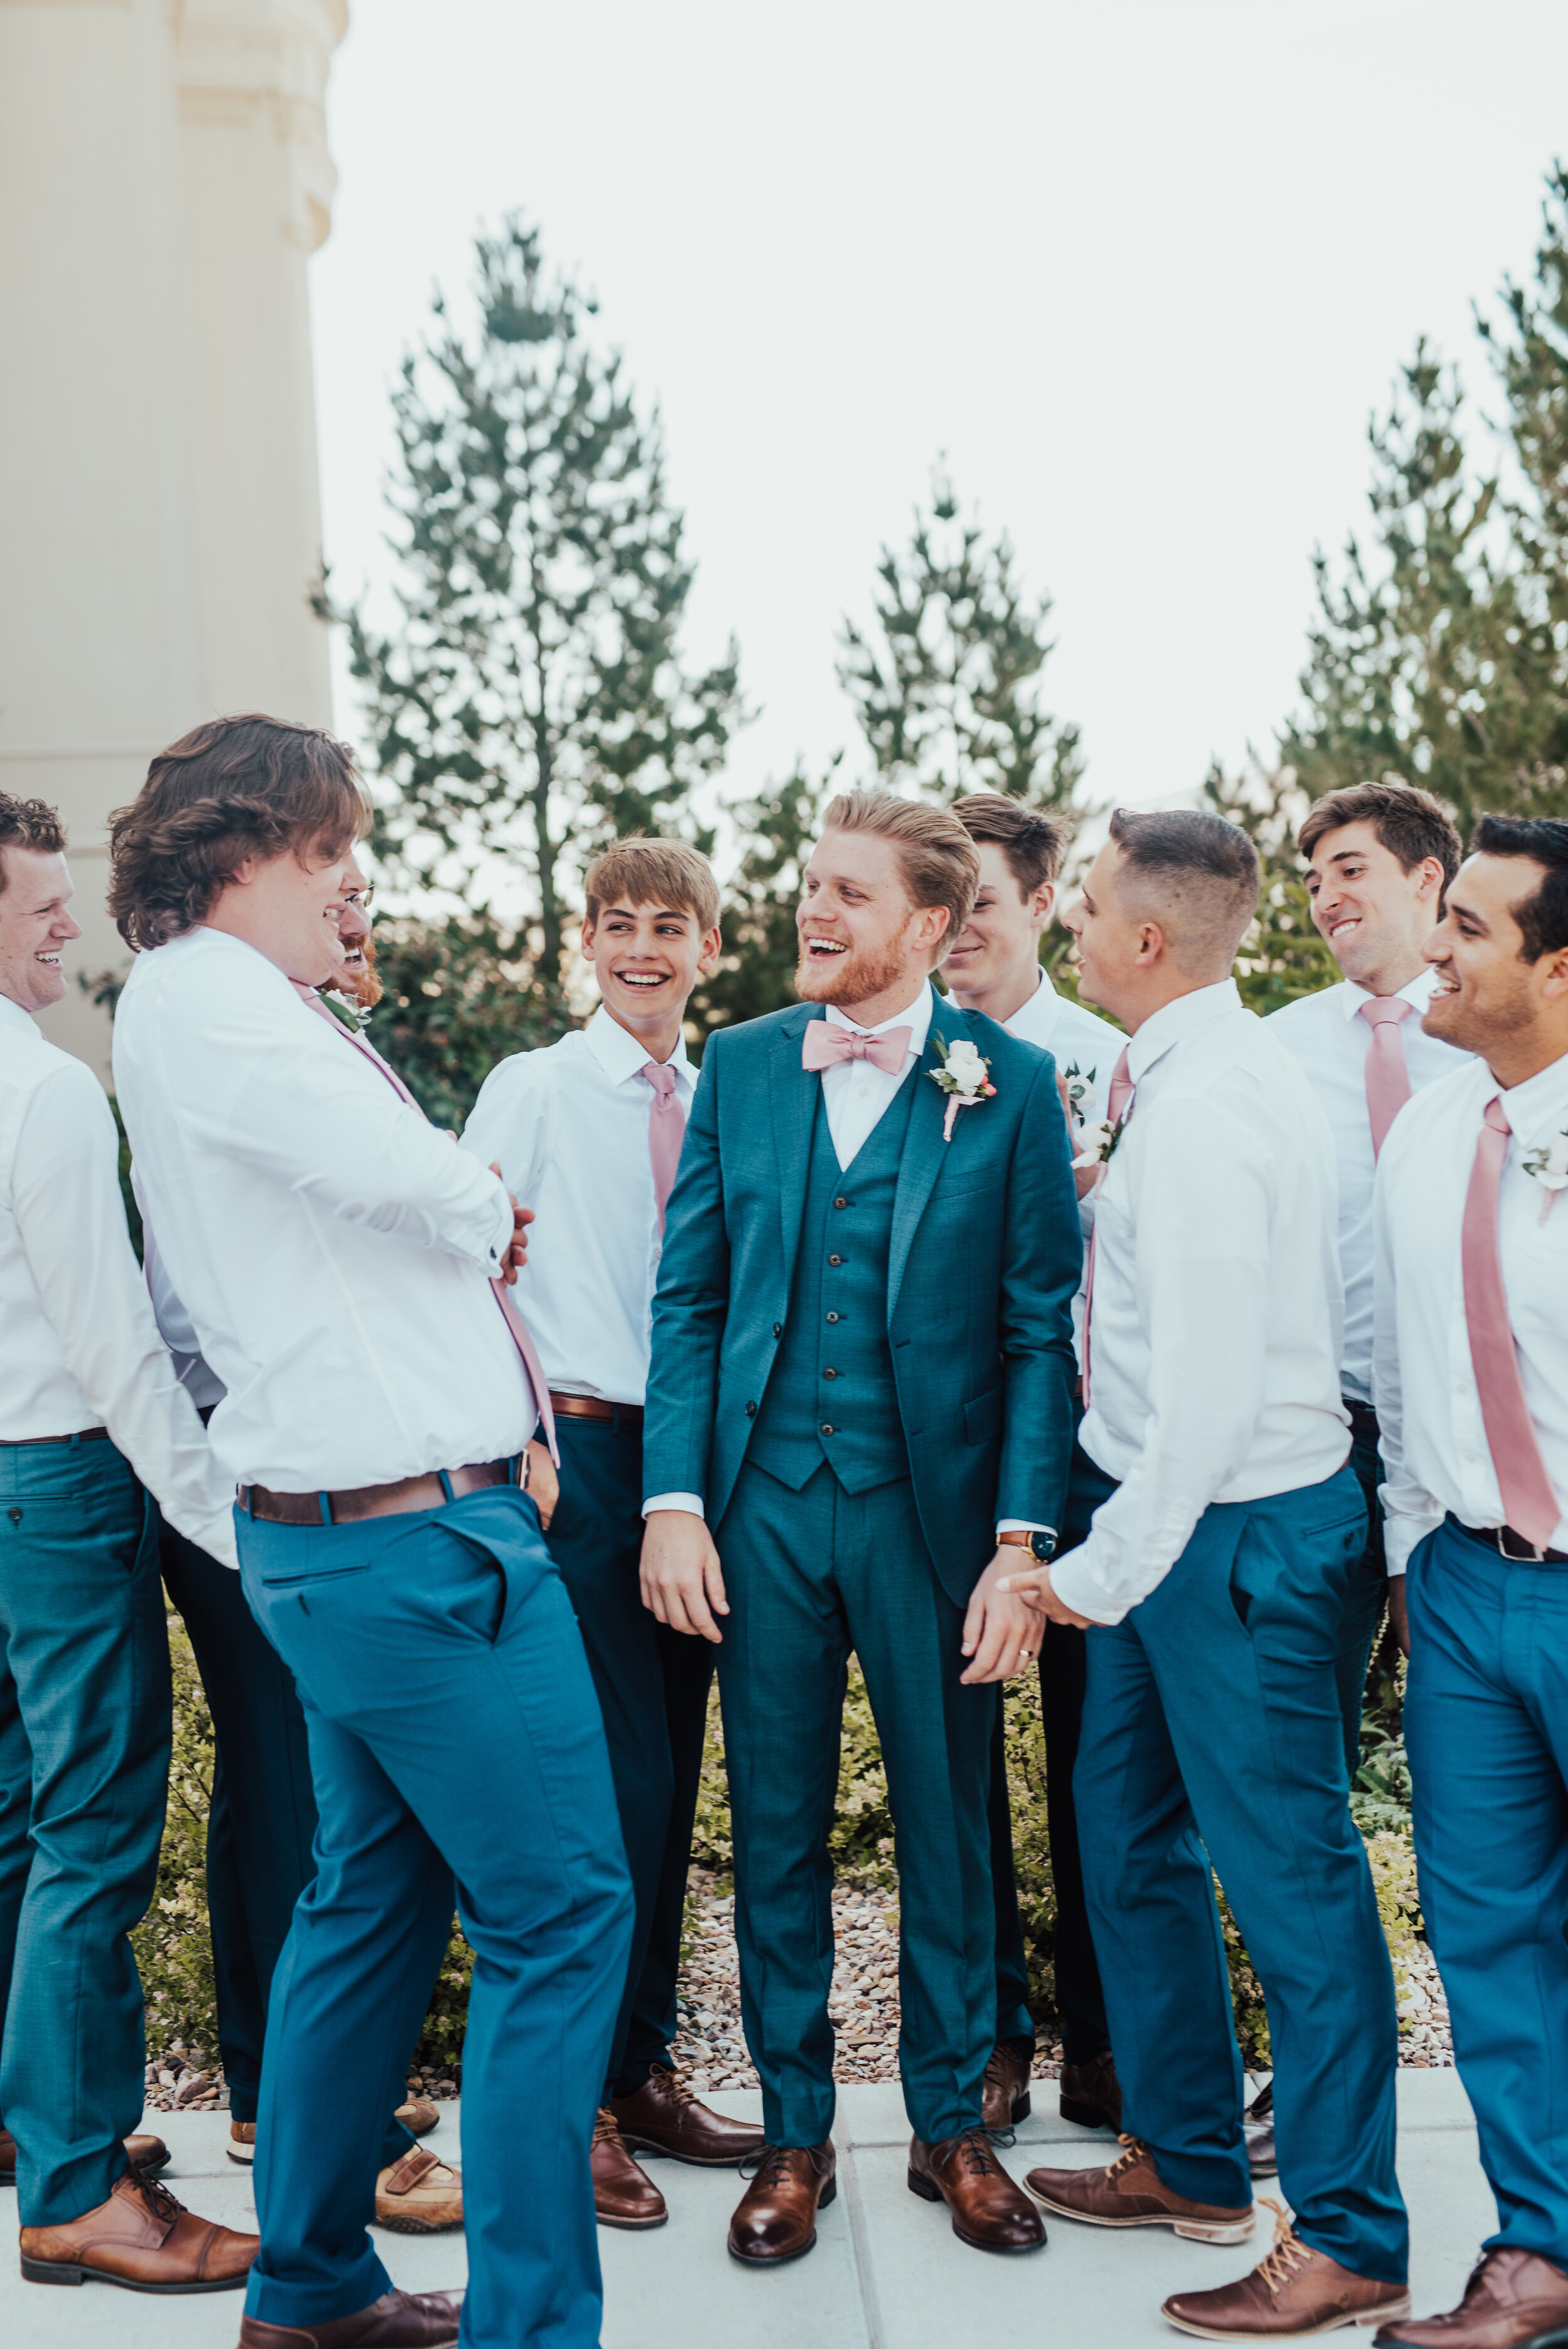 payson utah Payson utah temple wedding photos wedding party photos suit and tie bowtie three piece suits for grooms groomsman photos best man pink tie inspiration pink and blue wedding color inspo hairstyles for men for wedding day brown shoes for wedding best friends happy day groomsmen photos groomsmen attire navy groom suit #utahweddingphotographer #utahphotographer #weddingday #utahvalleyphotographer #ldstemple #groomsmen #groom #bestfriends #bowtie #suitandtie #navysuit